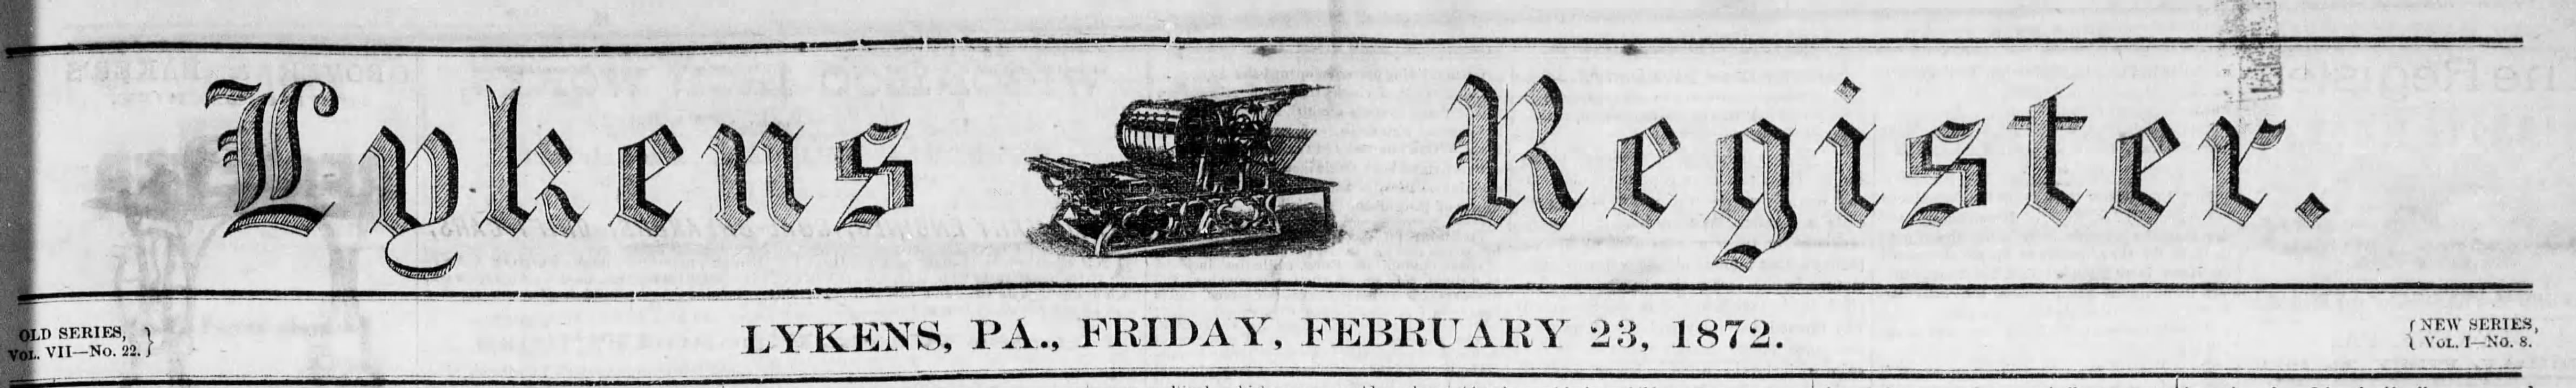 Lykens Register Headline February 1872